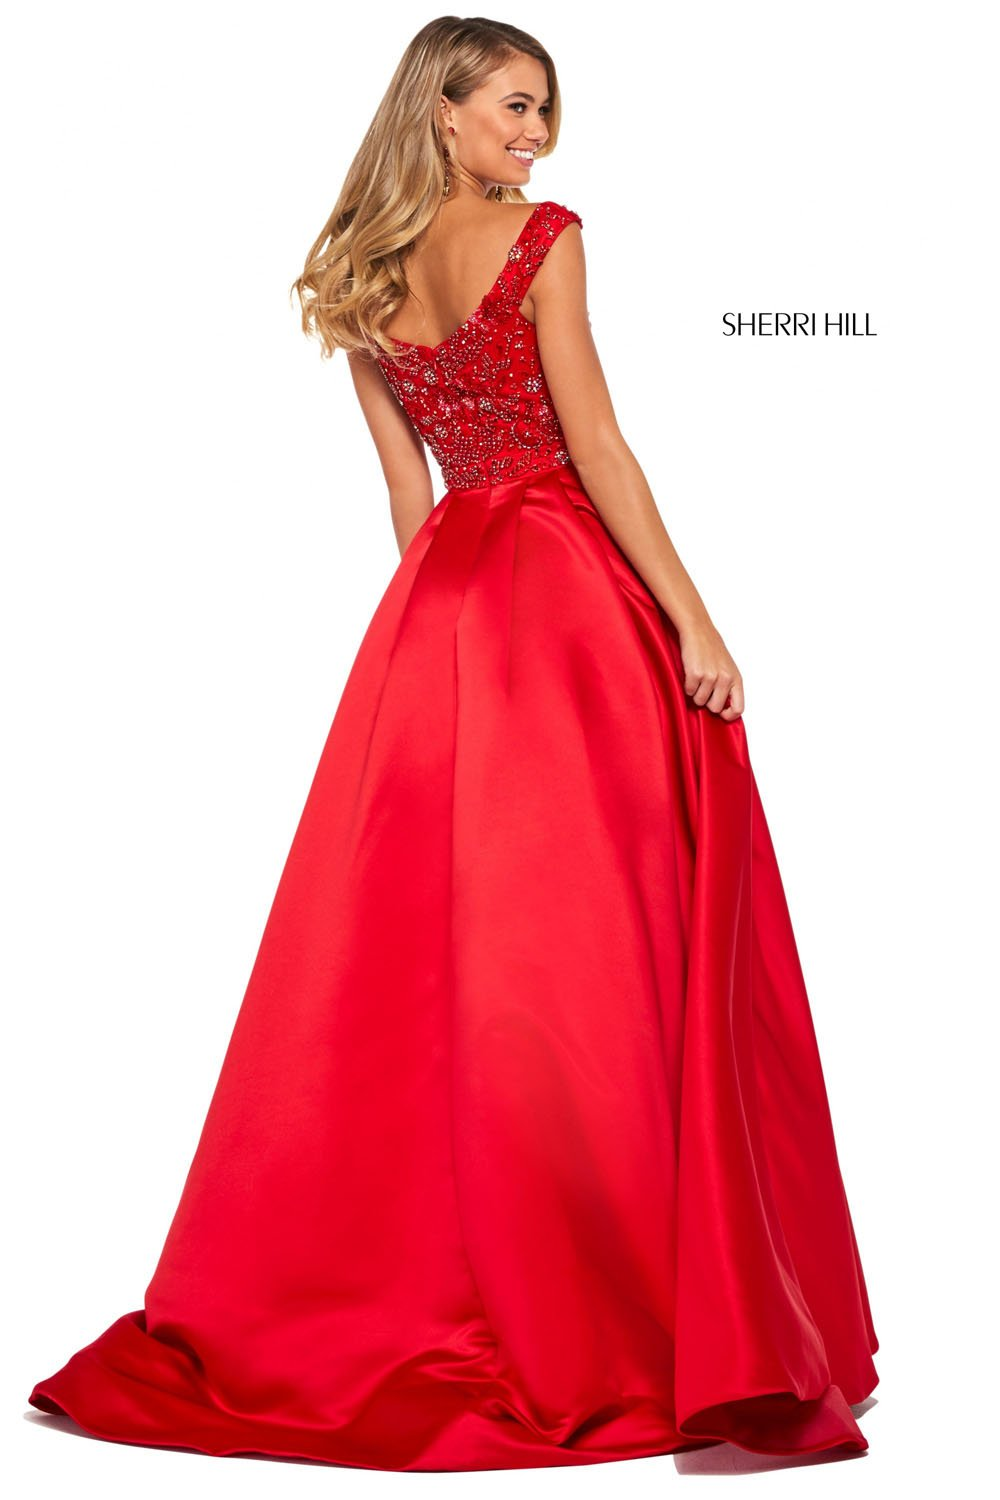 Sherri Hill 53317 prom dress images.  Sherri Hill 53317 is available in these colors: Royal, Teal, Red, Emerald, Black, Ivory, Candy Pink, Aqua.